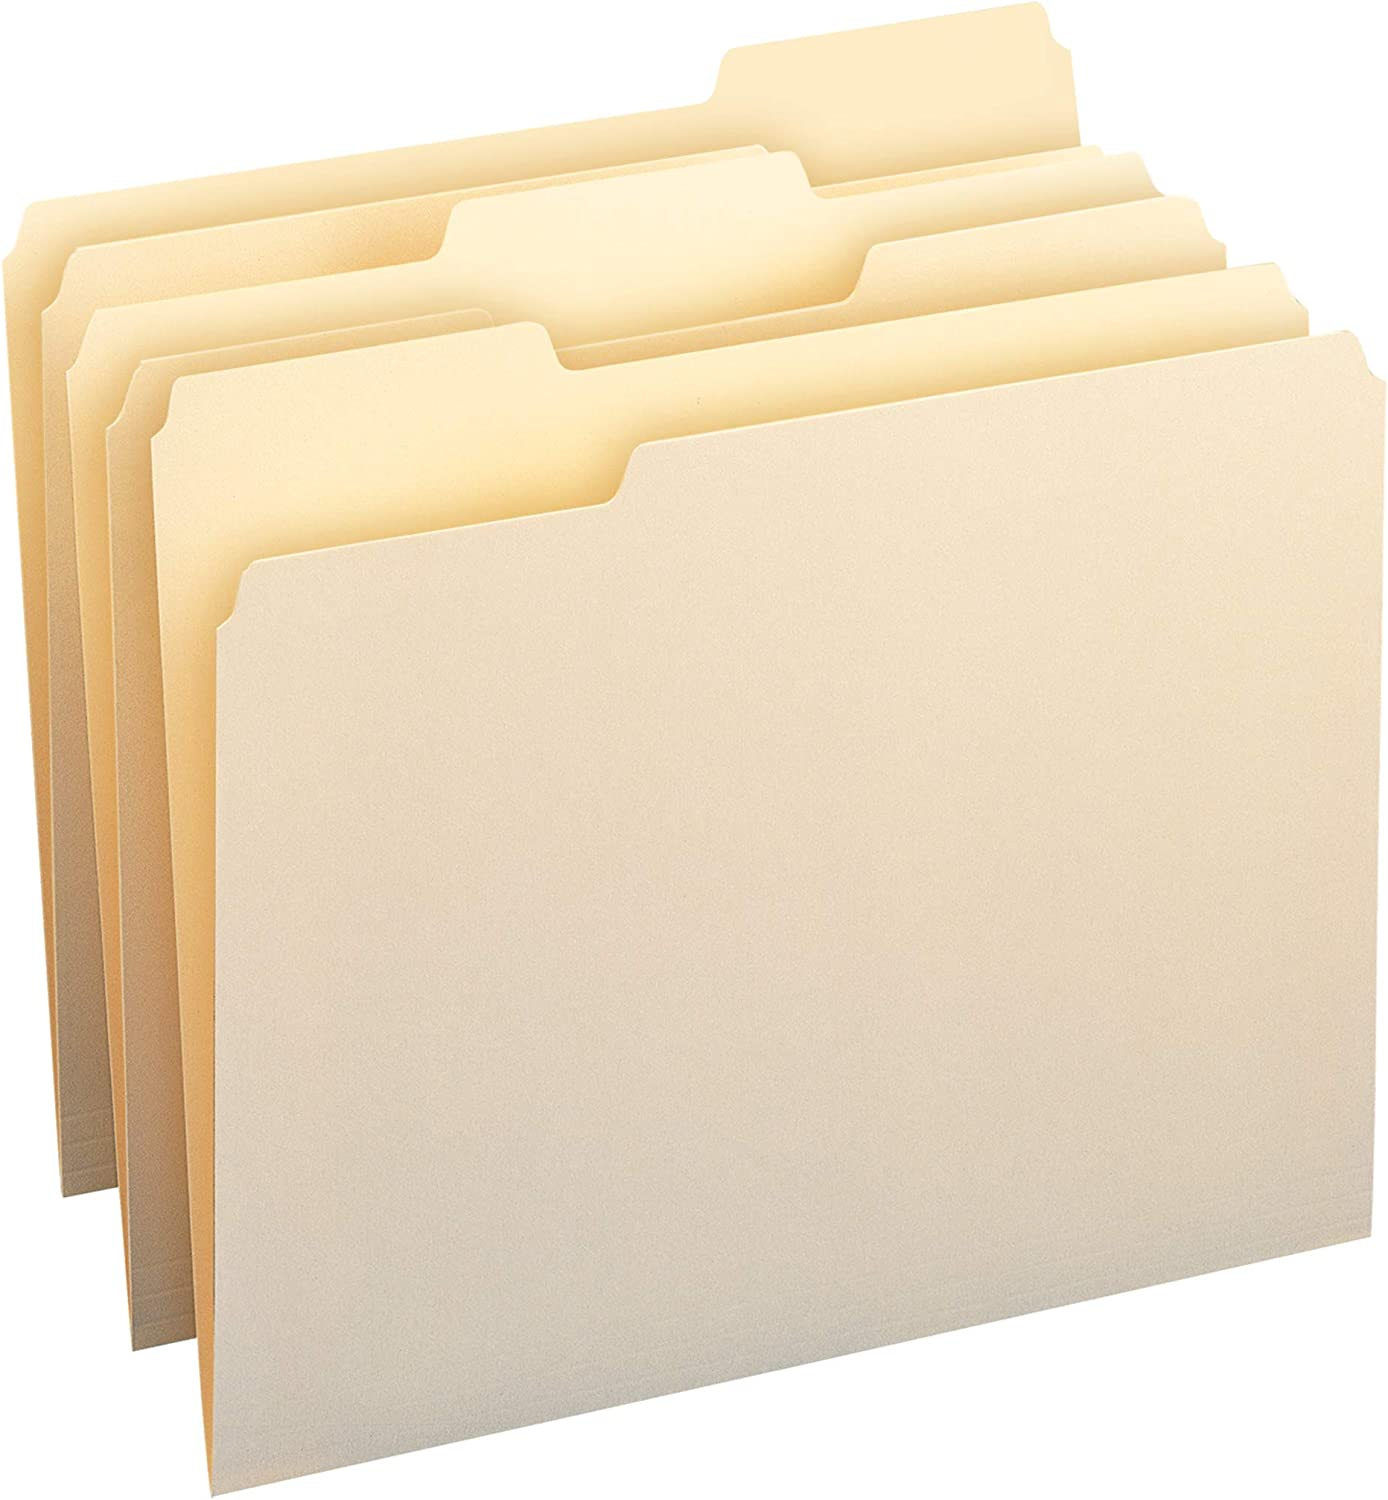 Basics 1/3-Cut Tab, Assorted Positions File Folders, Letter Size, Manila - Pack of 100 : Office Products